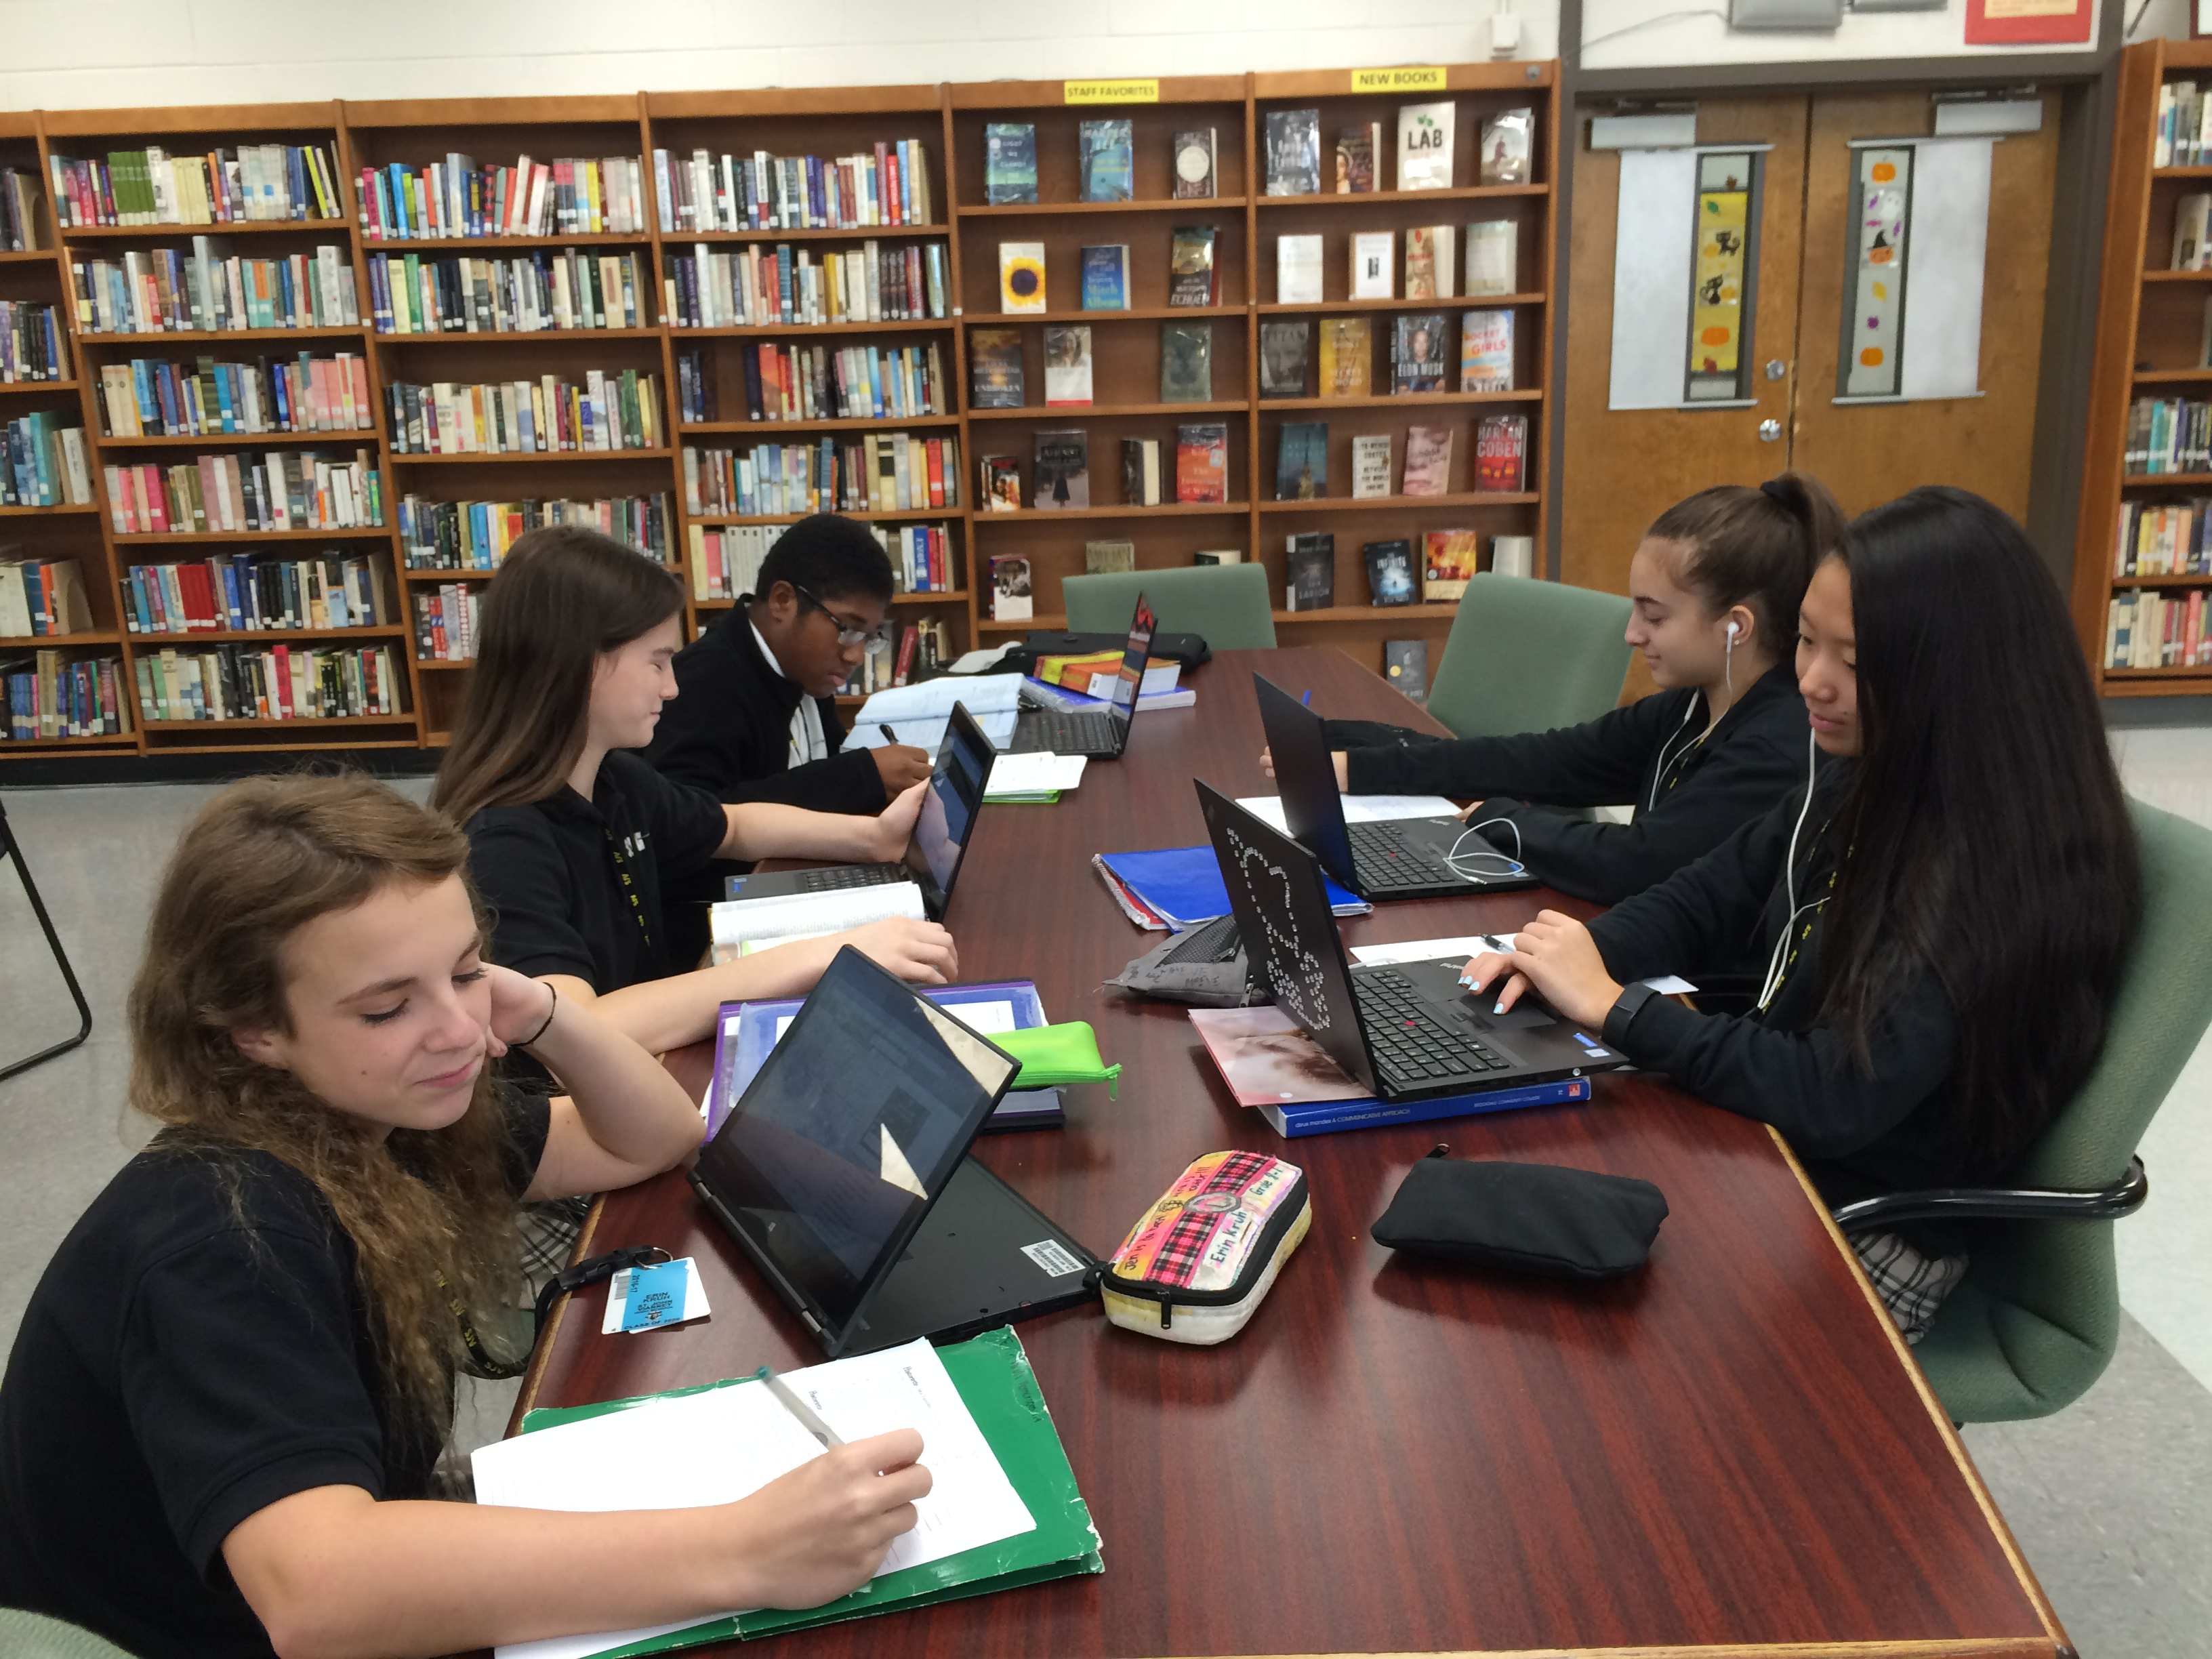 High School Library in Holmdel NJ - Saint John Vianney High School